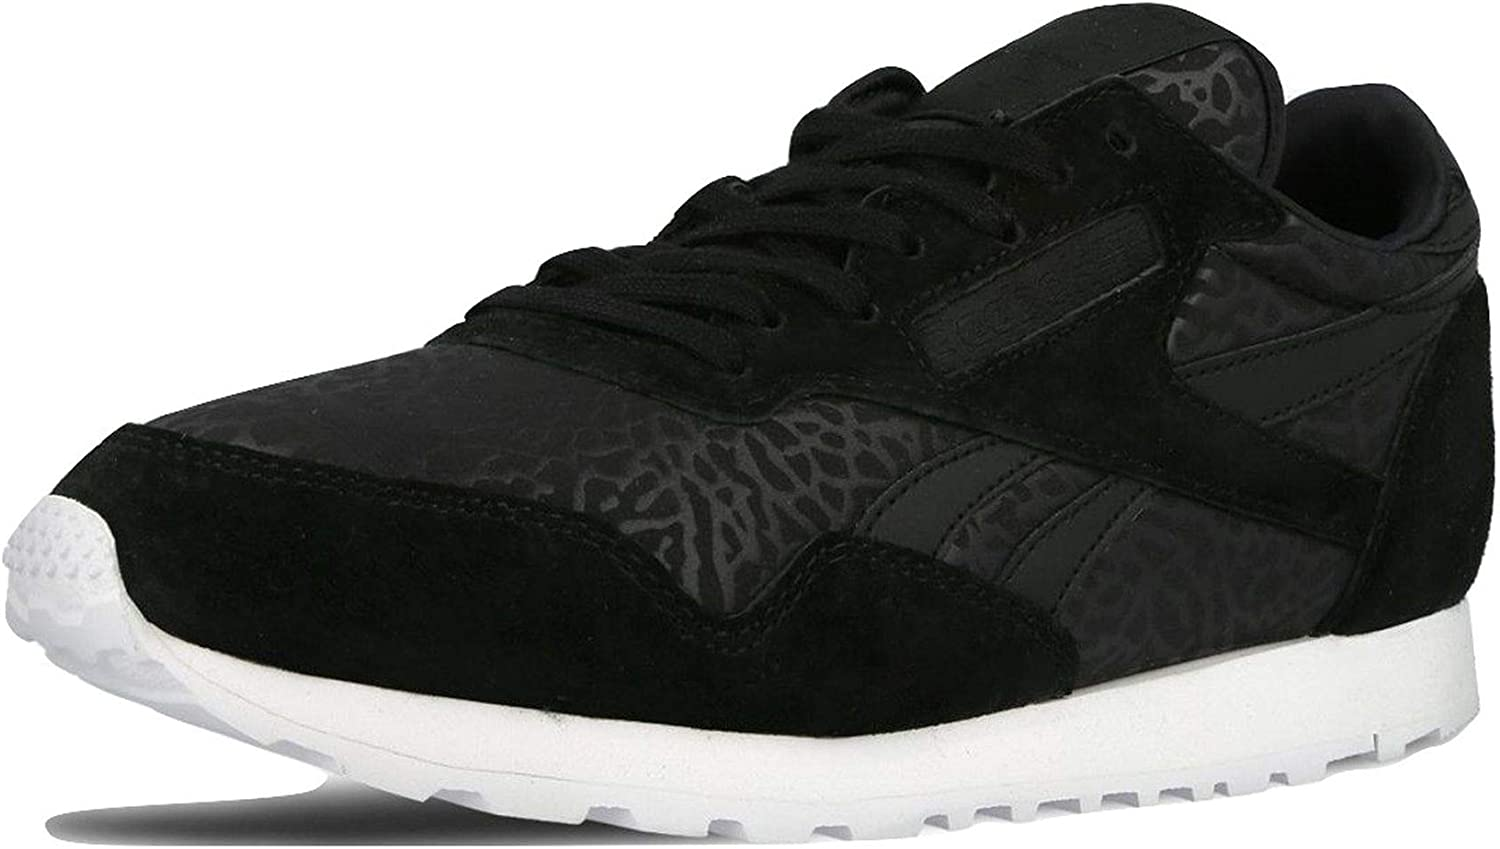 senaste designen usa billig försäljning stor rabatt Reebok Paris Runner Gallery II Trainers Black 6 UK: Amazon.co.uk ...